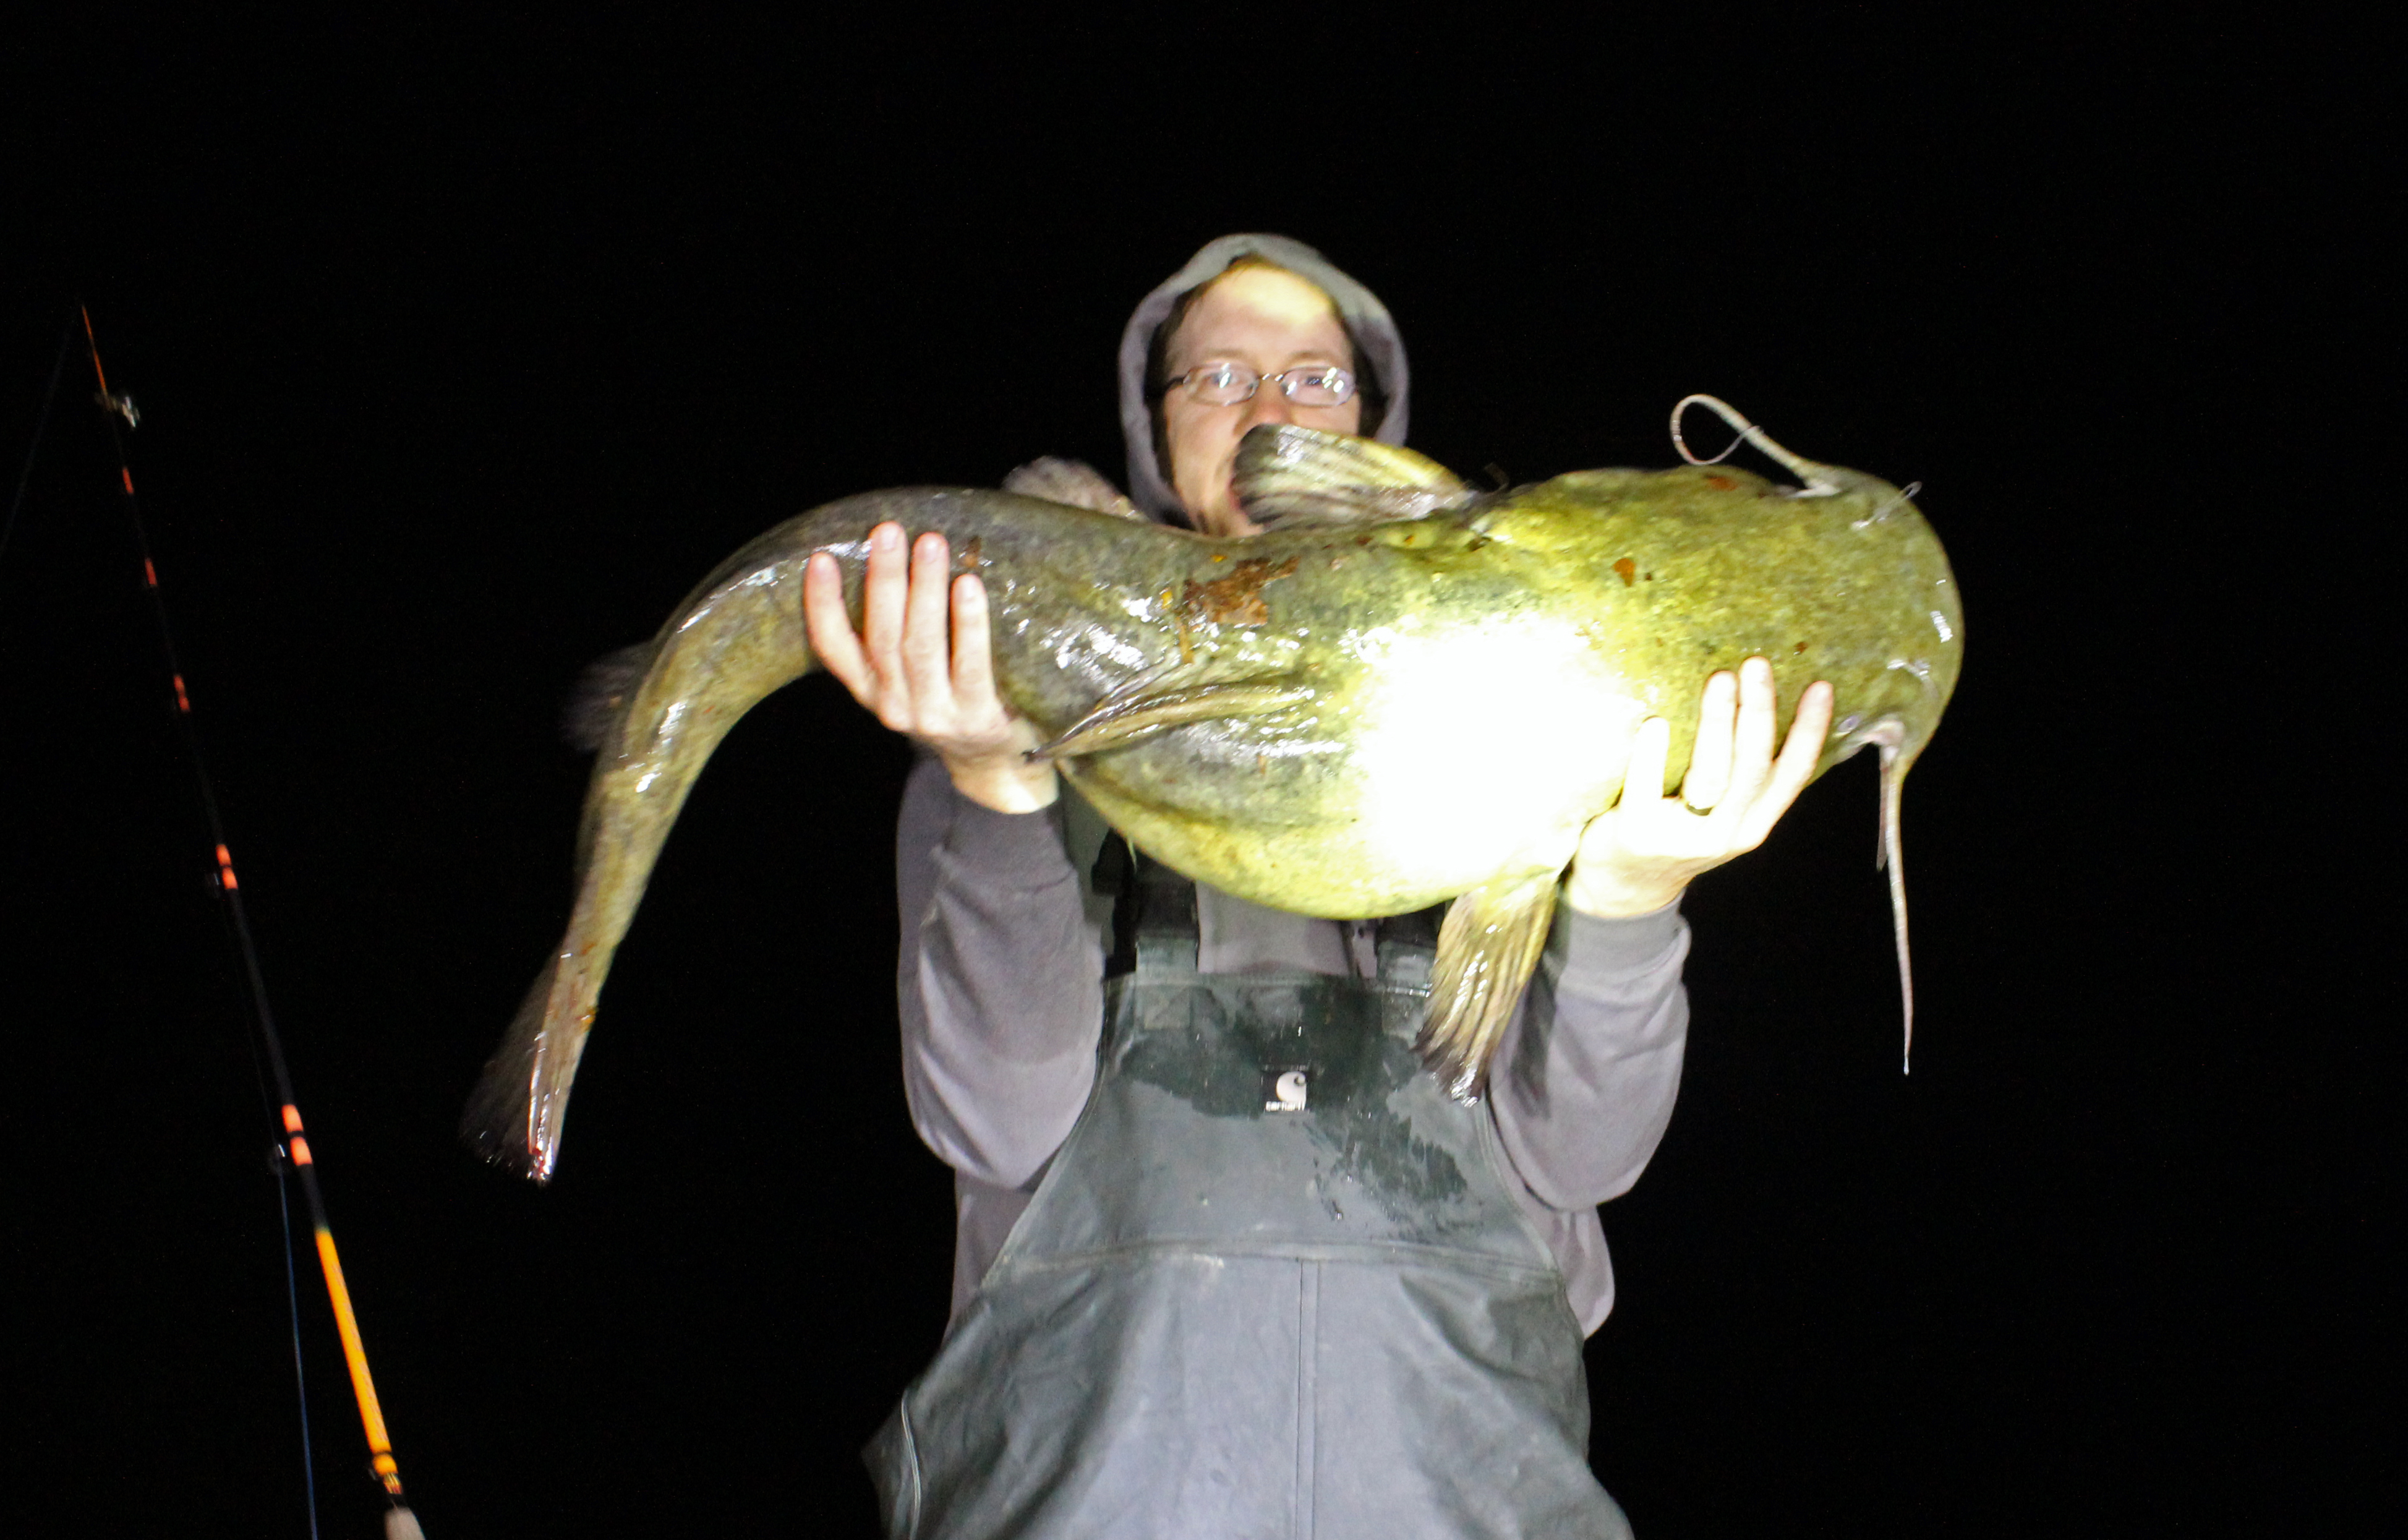 40.5 lb flathead caught on live shad.